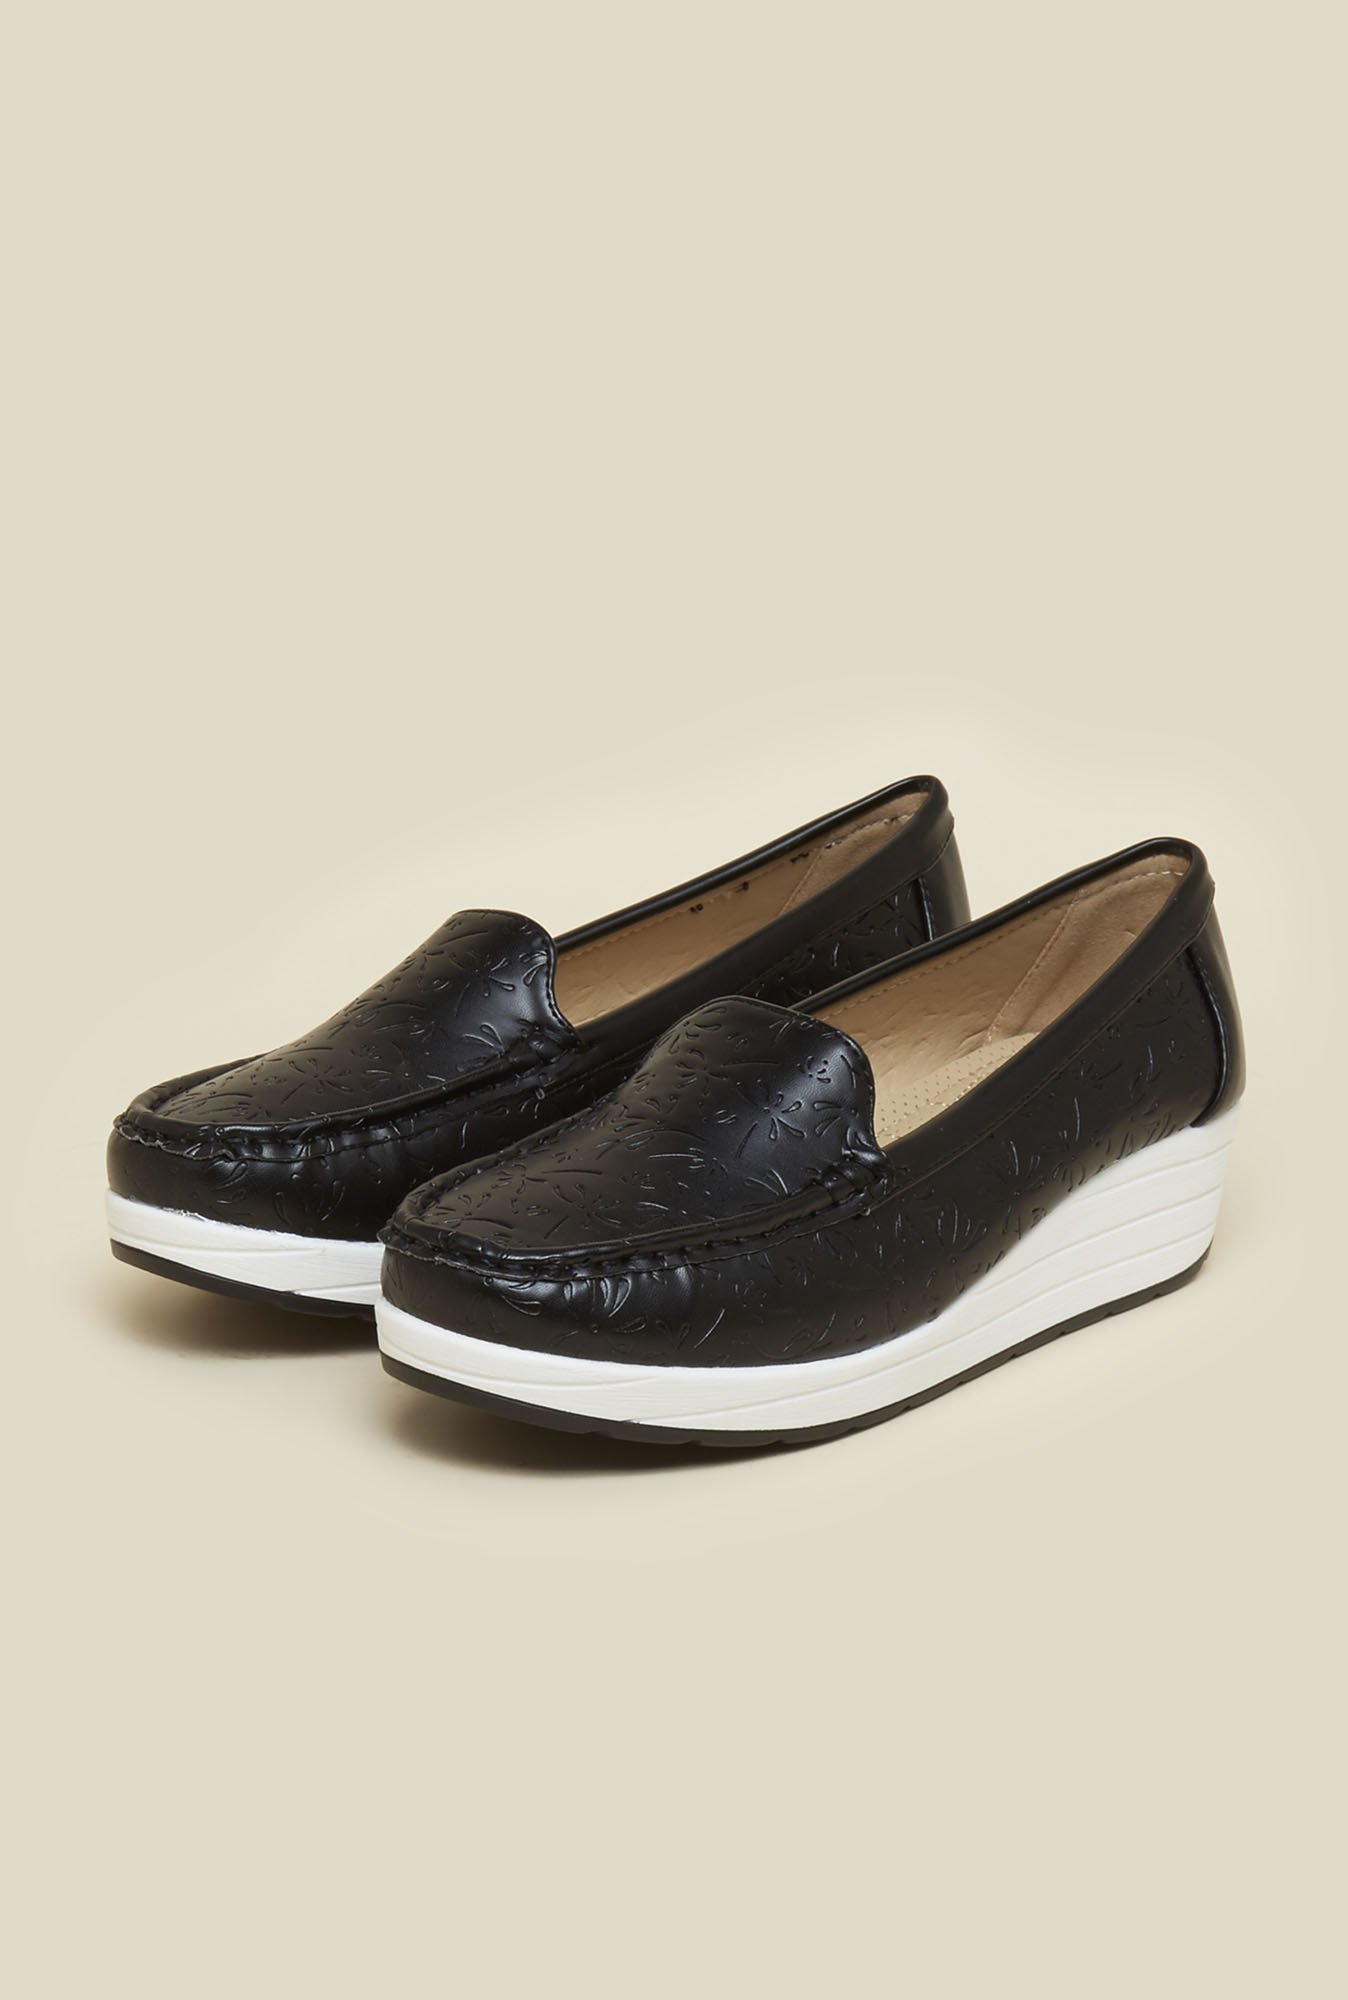 Mochi Black Wedge Heel Loafers